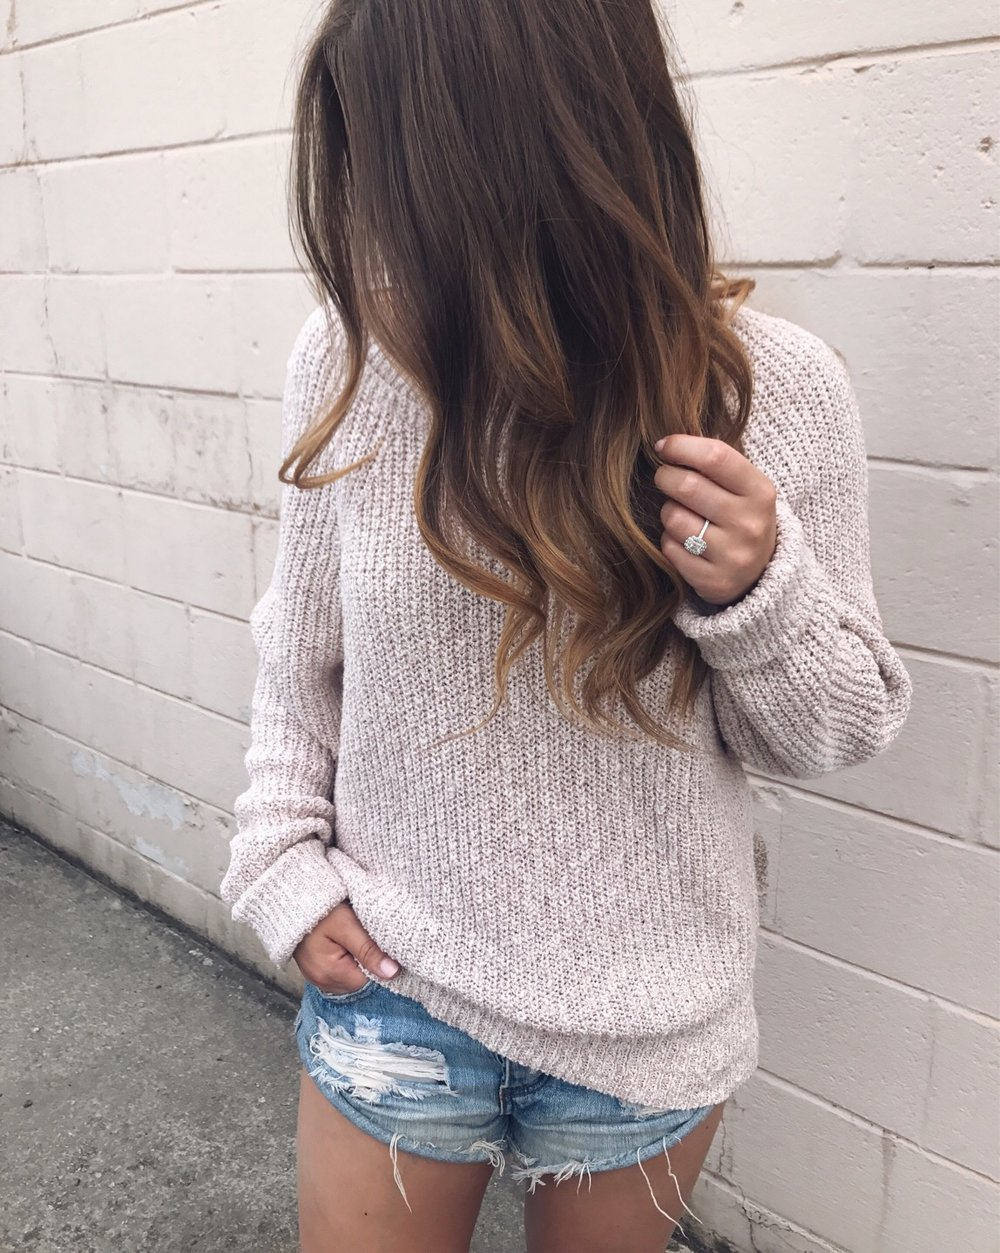 free people sweater / one teaspoon shorts / fall transition outfit idea